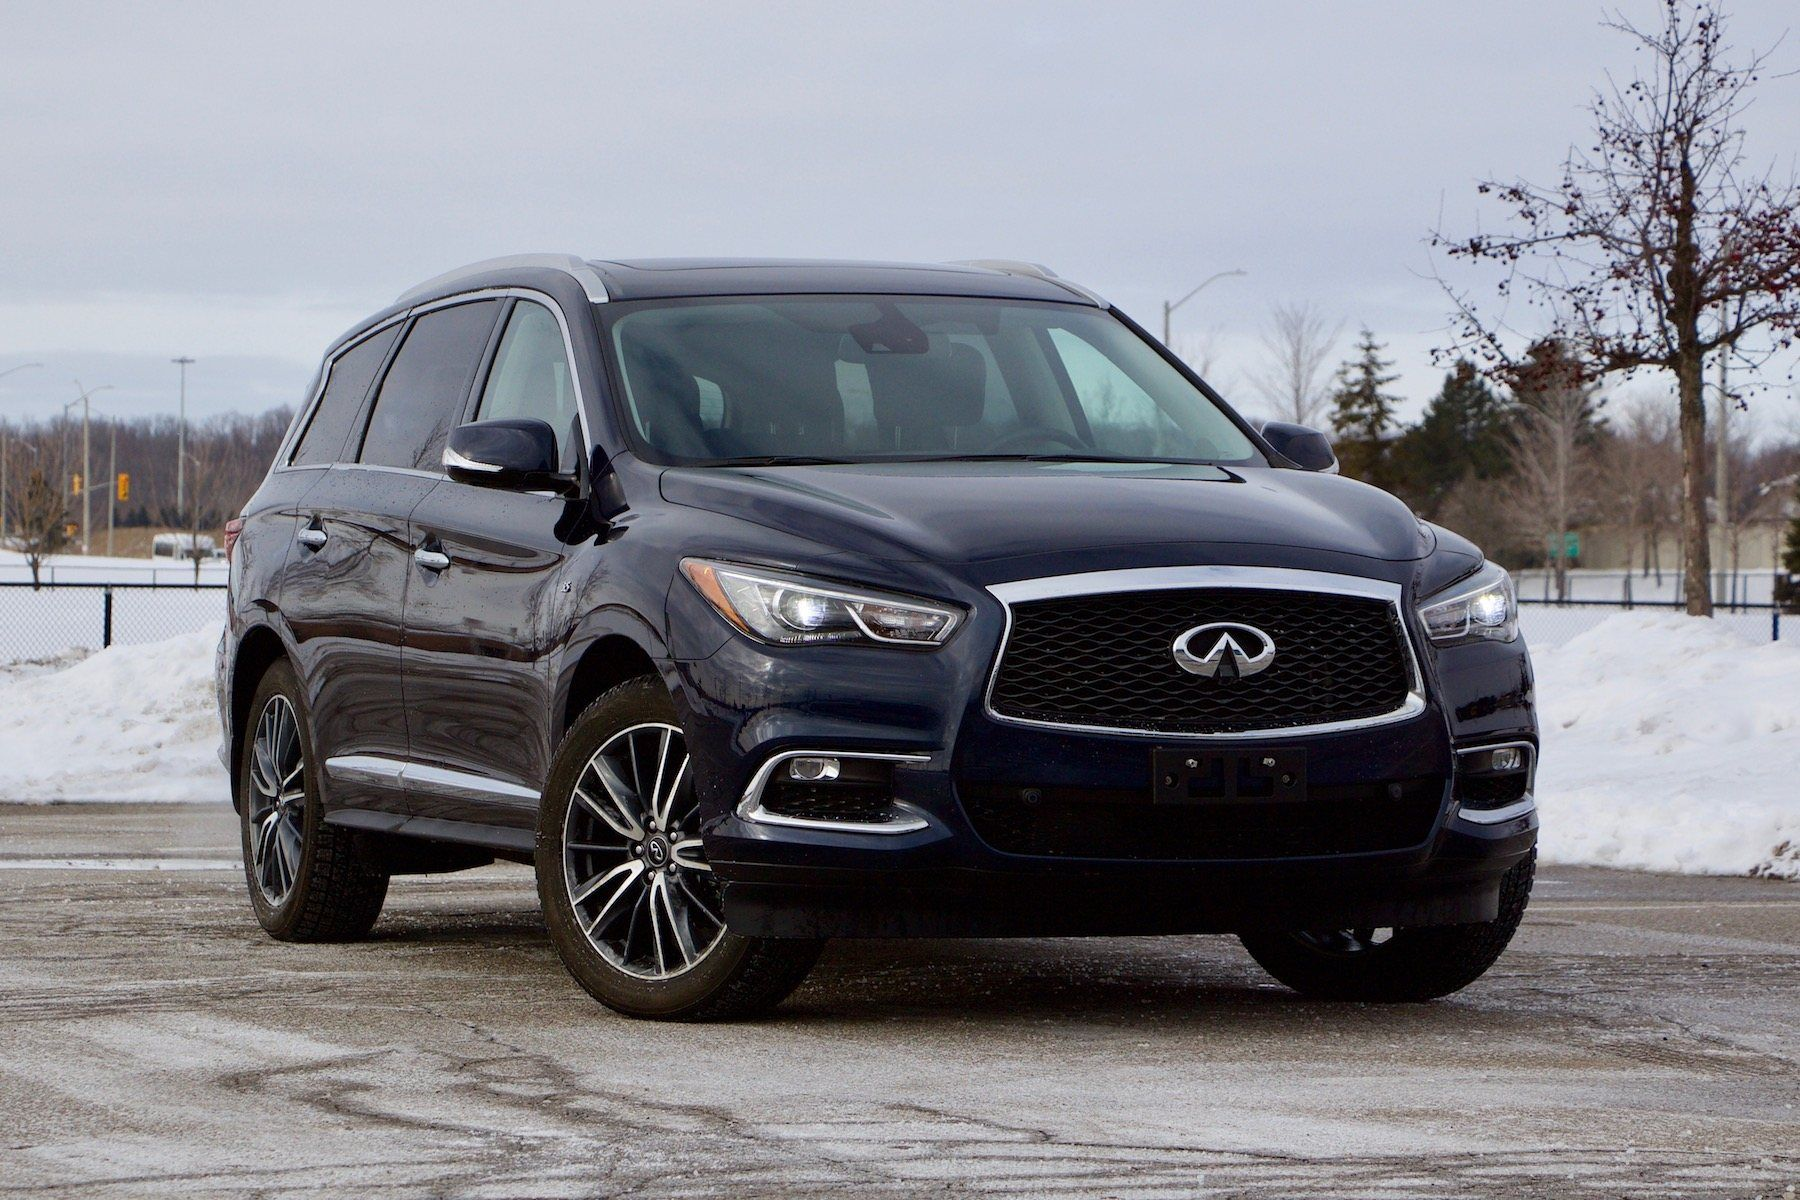 2020 Infiniti Qx60 Hybrid Specs And Review In 2020 Suv Reviews Infiniti Luxury Crossovers